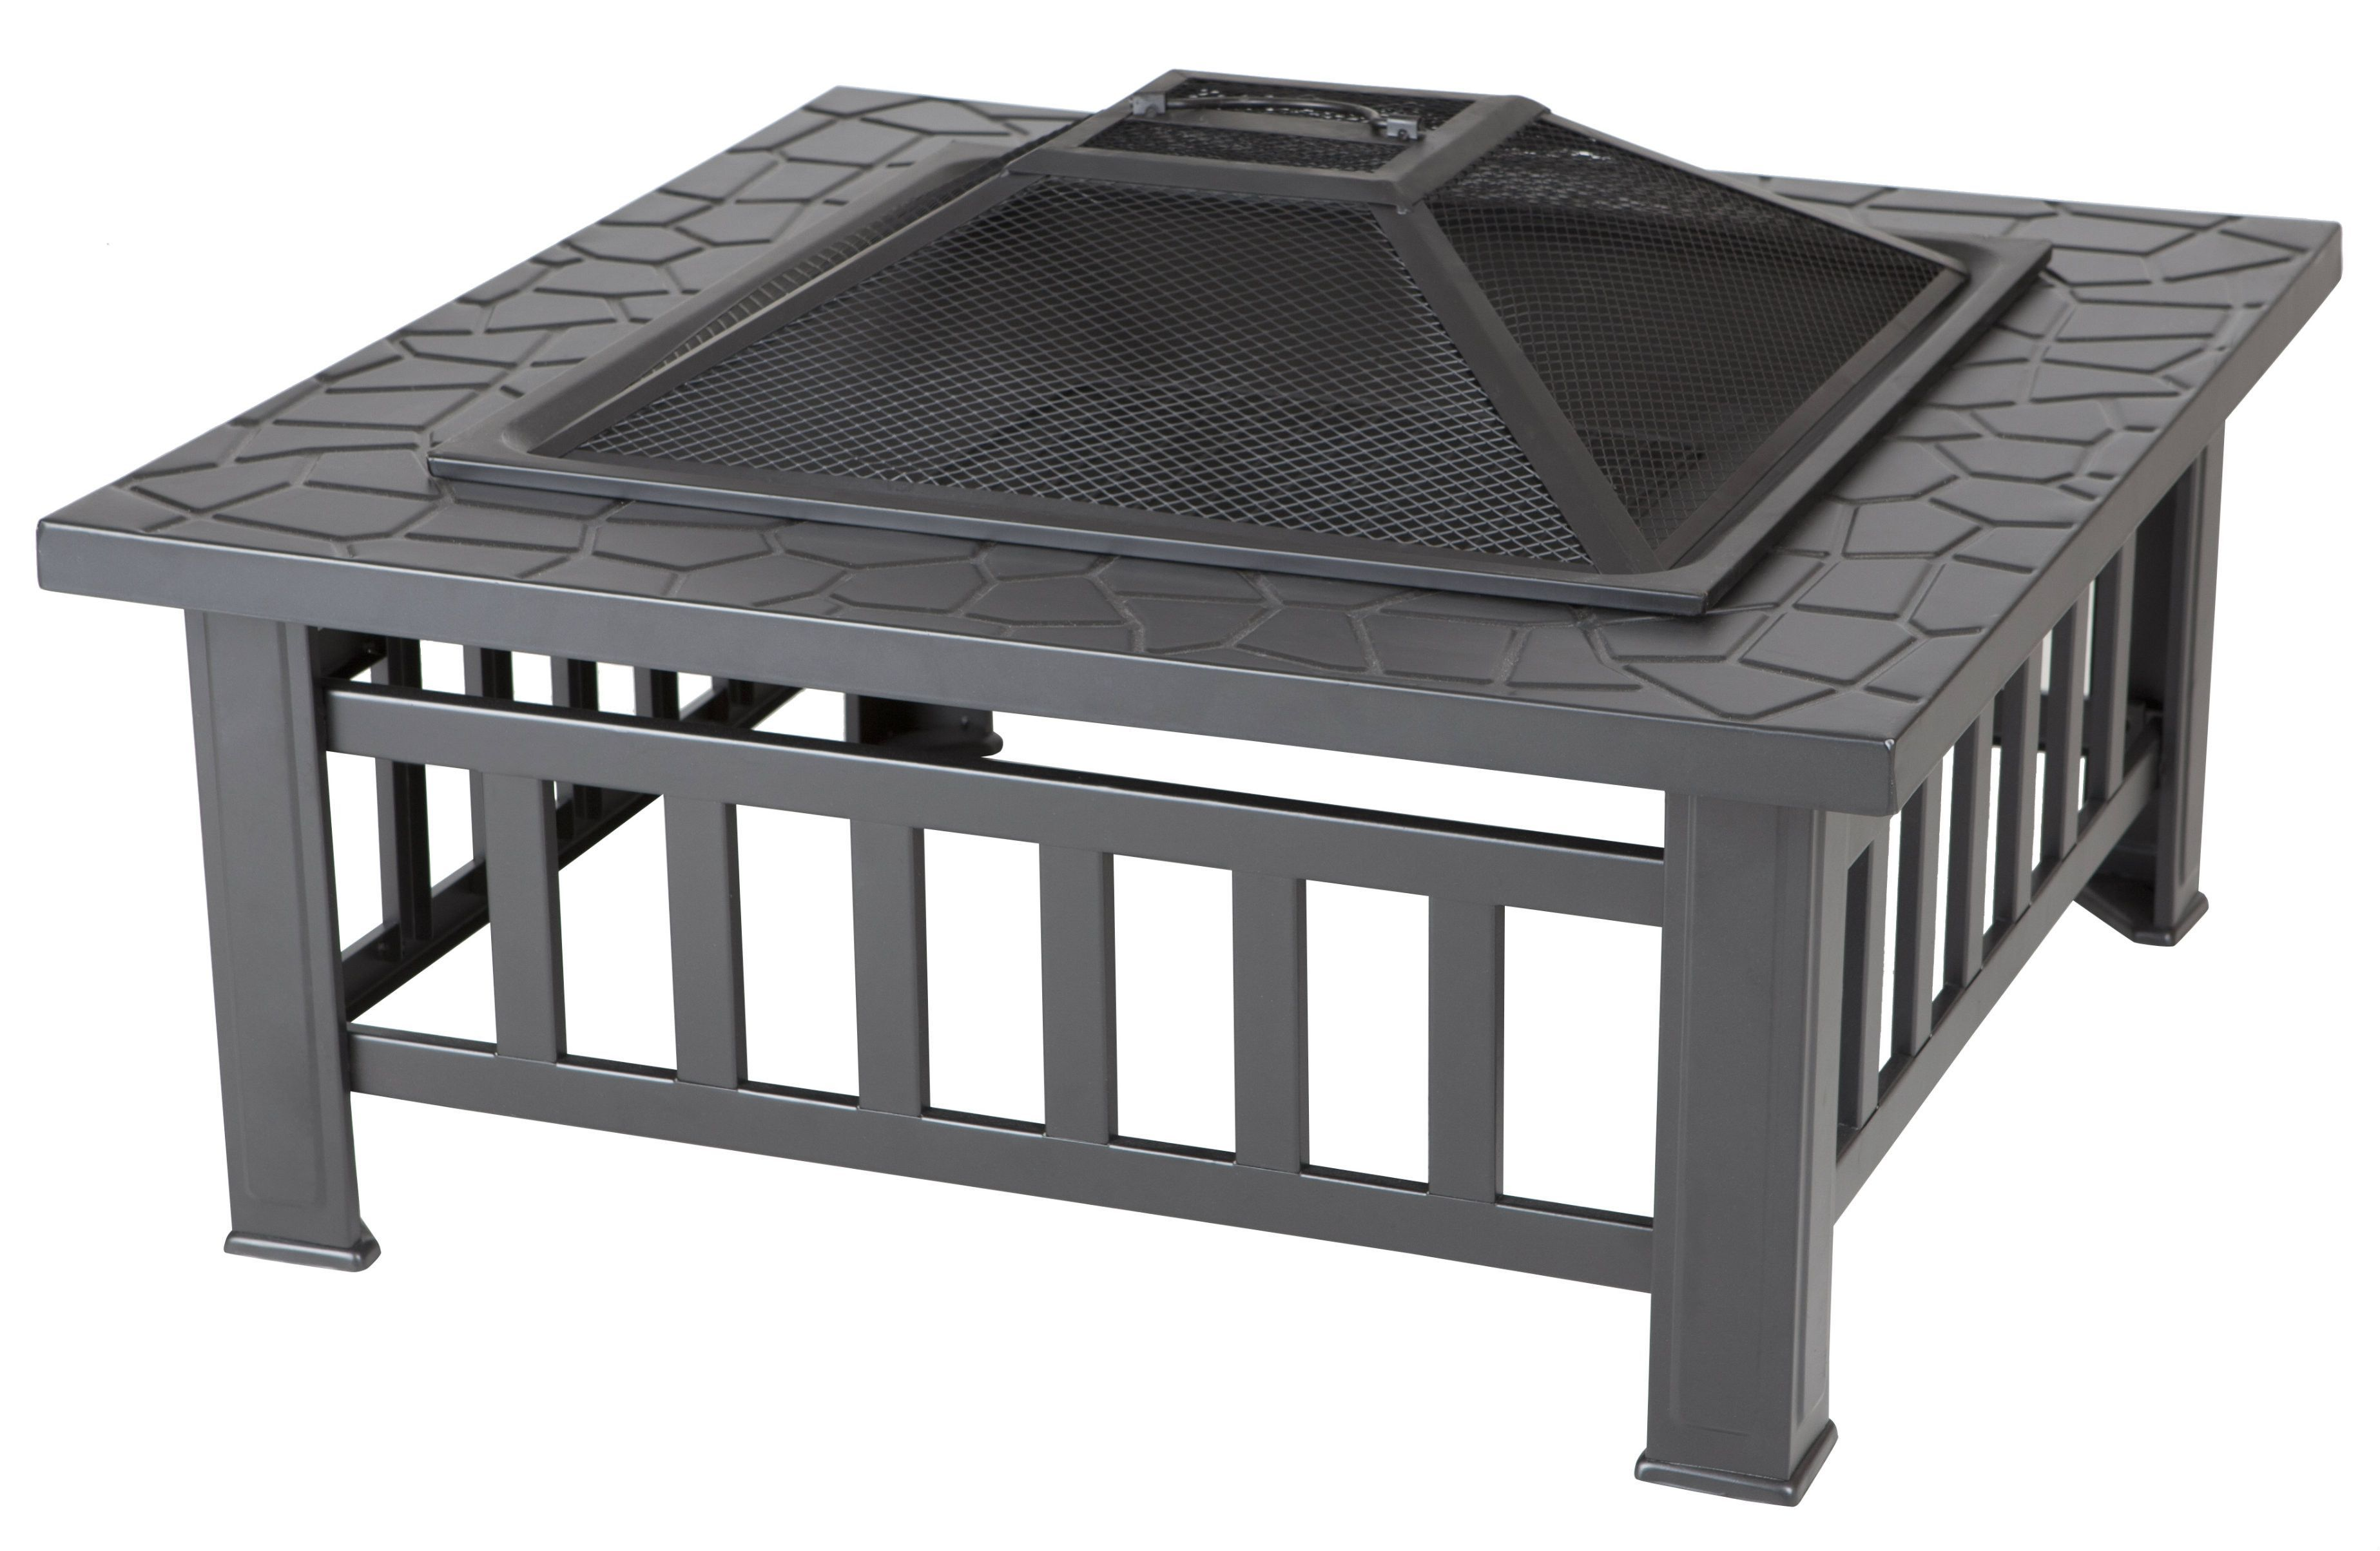 11136363185d6cea1e41dd24a792a851 Top Result 50 Awesome Fire Pit Insert Gallery 2018 Ksh4